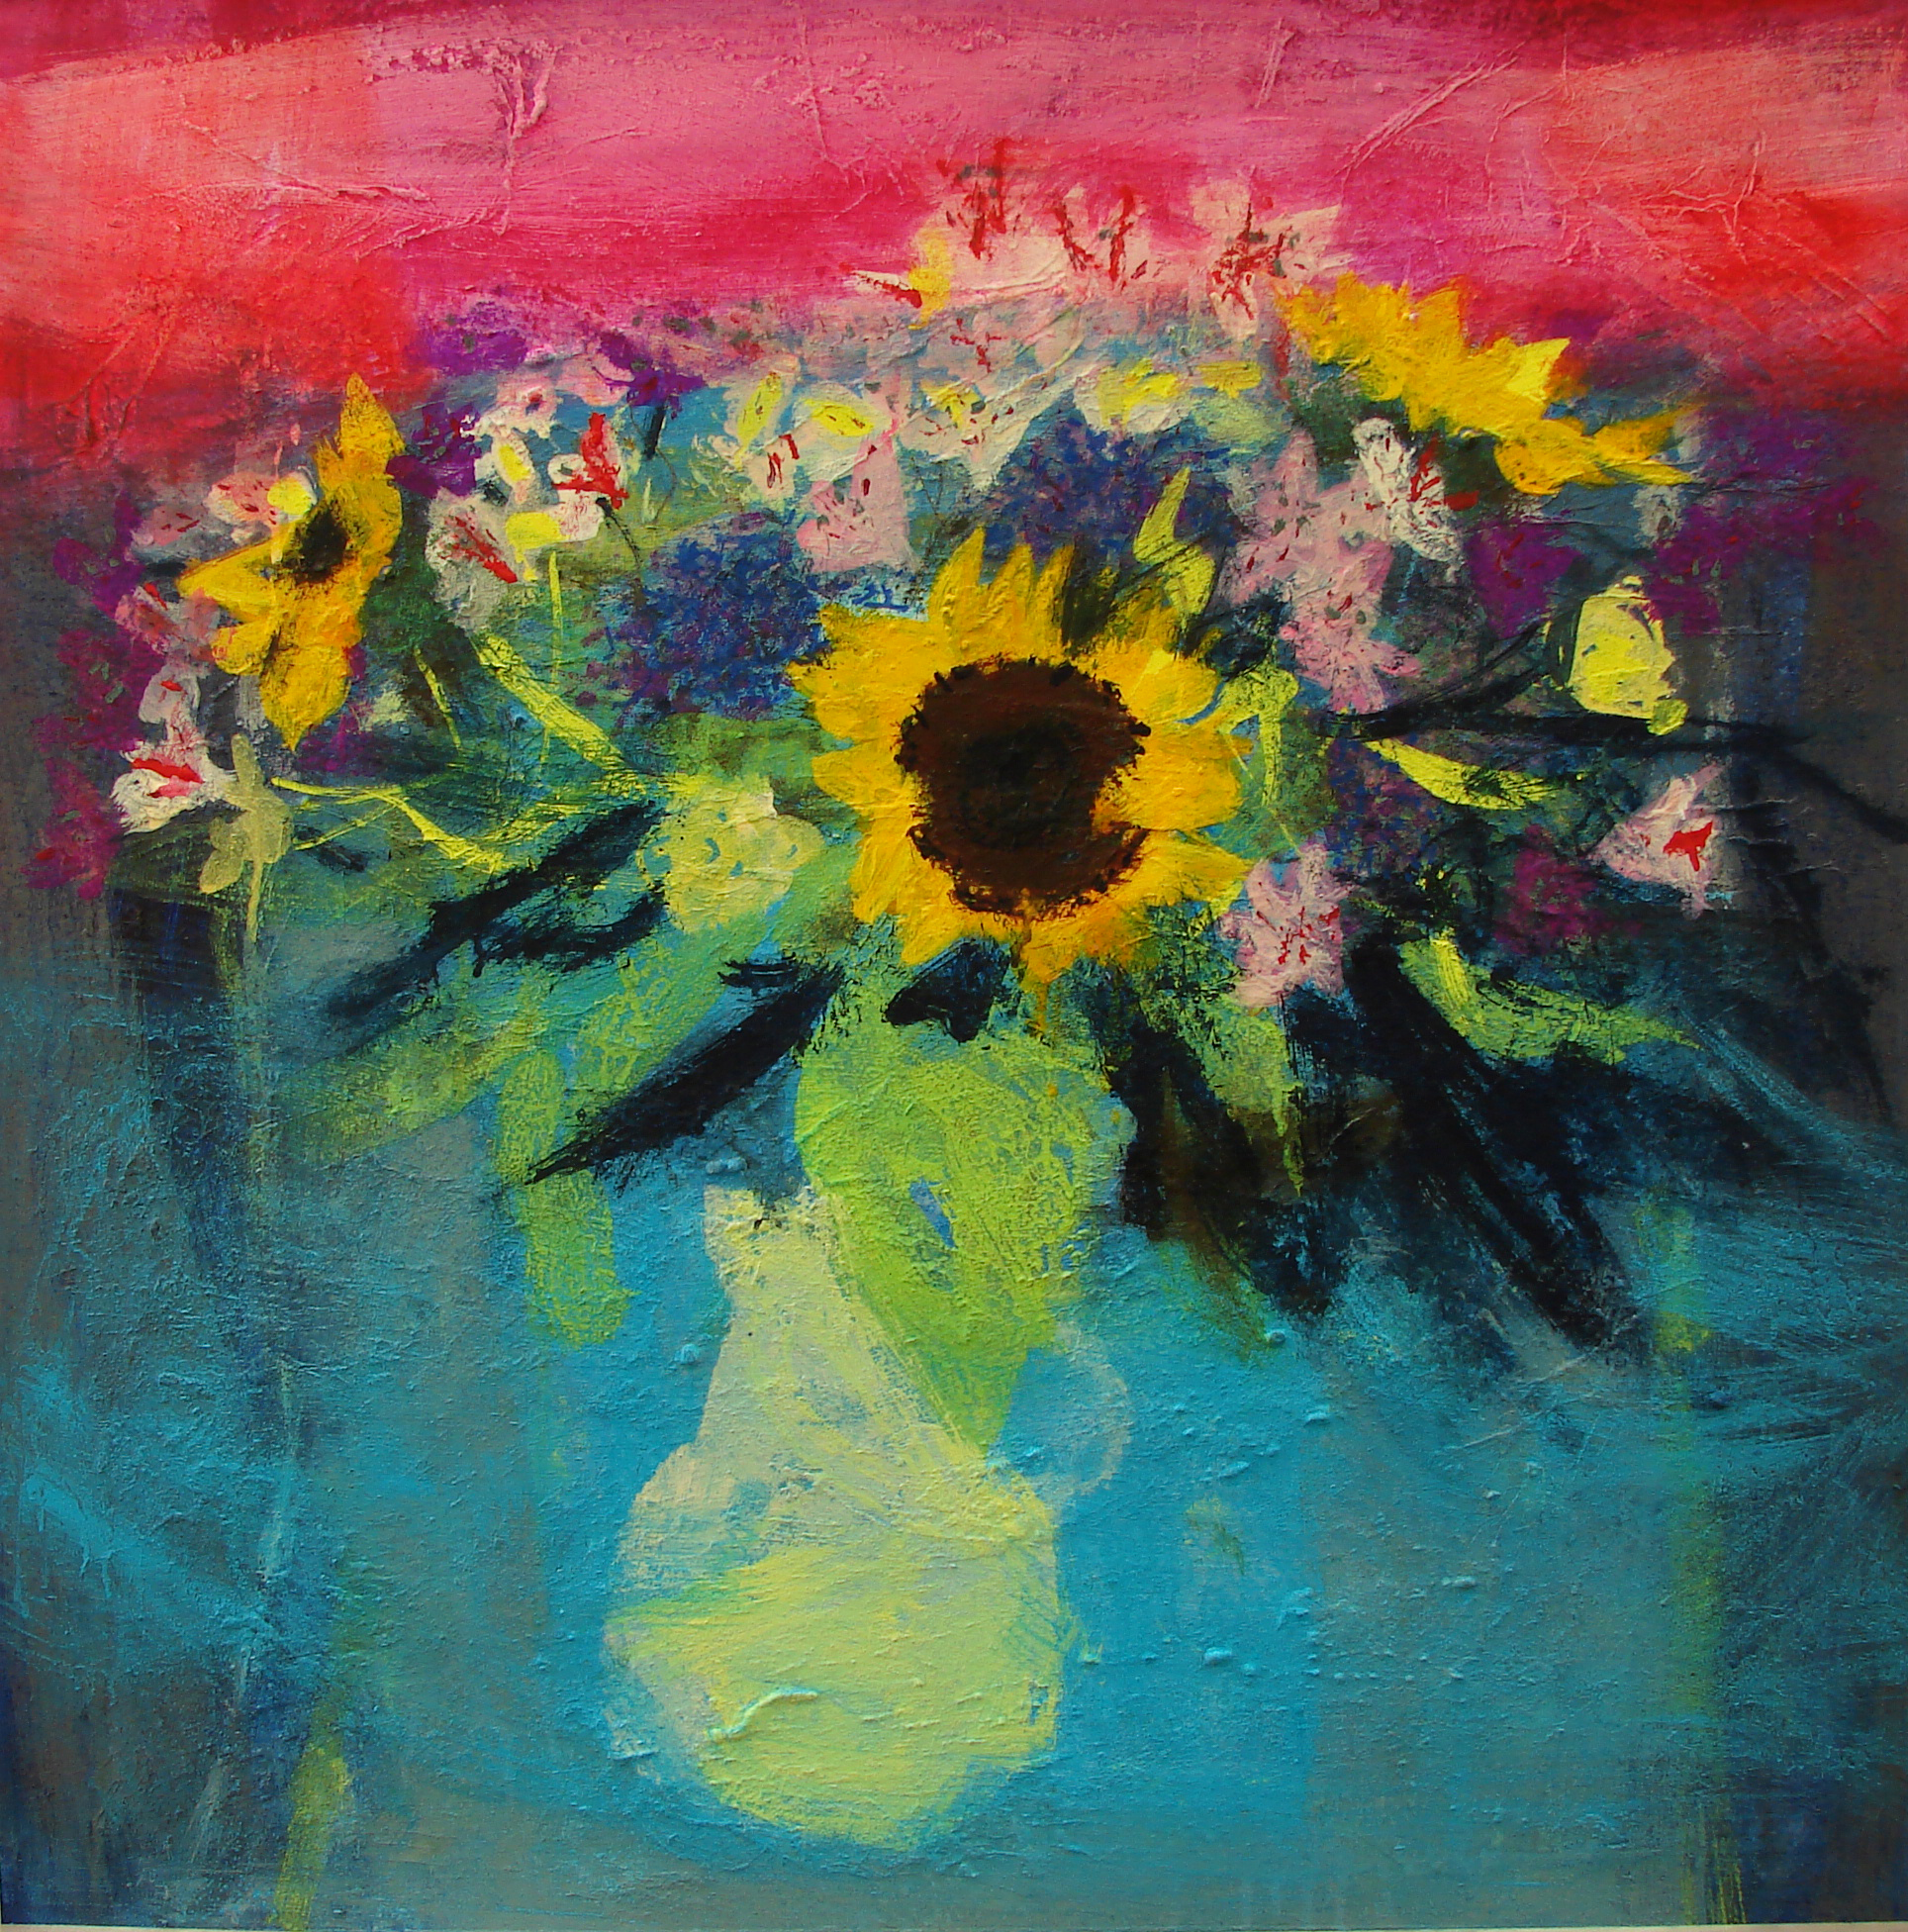 Sunflowers on Sea Blue Cloth mixed media on board 76 x 76 cm £3,950